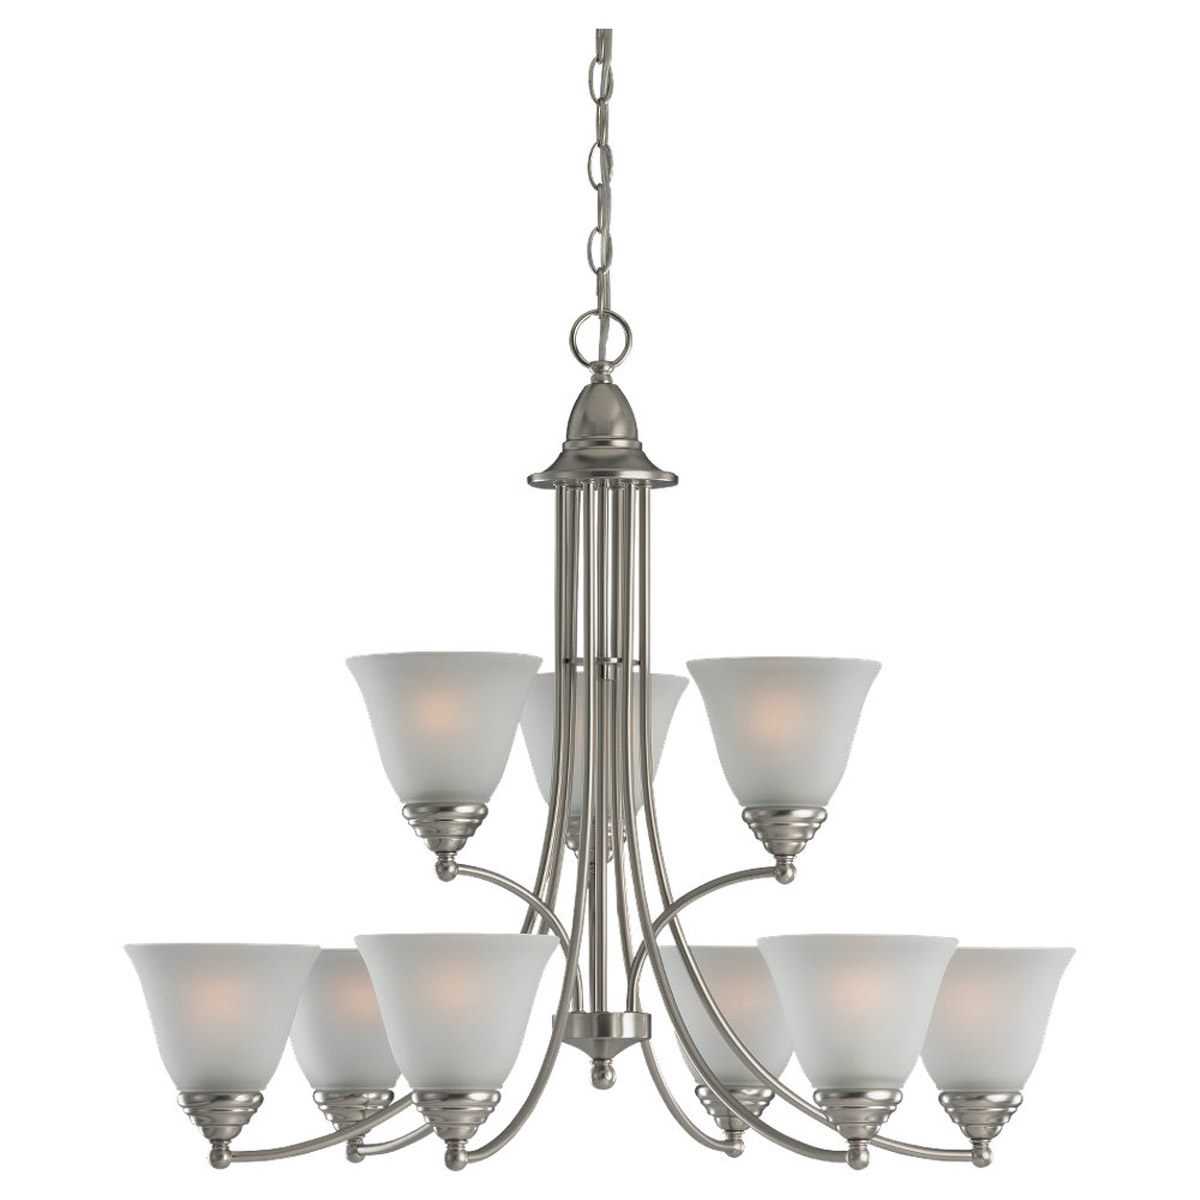 Sea Gull Lighting Albany 9 Light Chandelier in Brushed Nickel 31577-962 photo